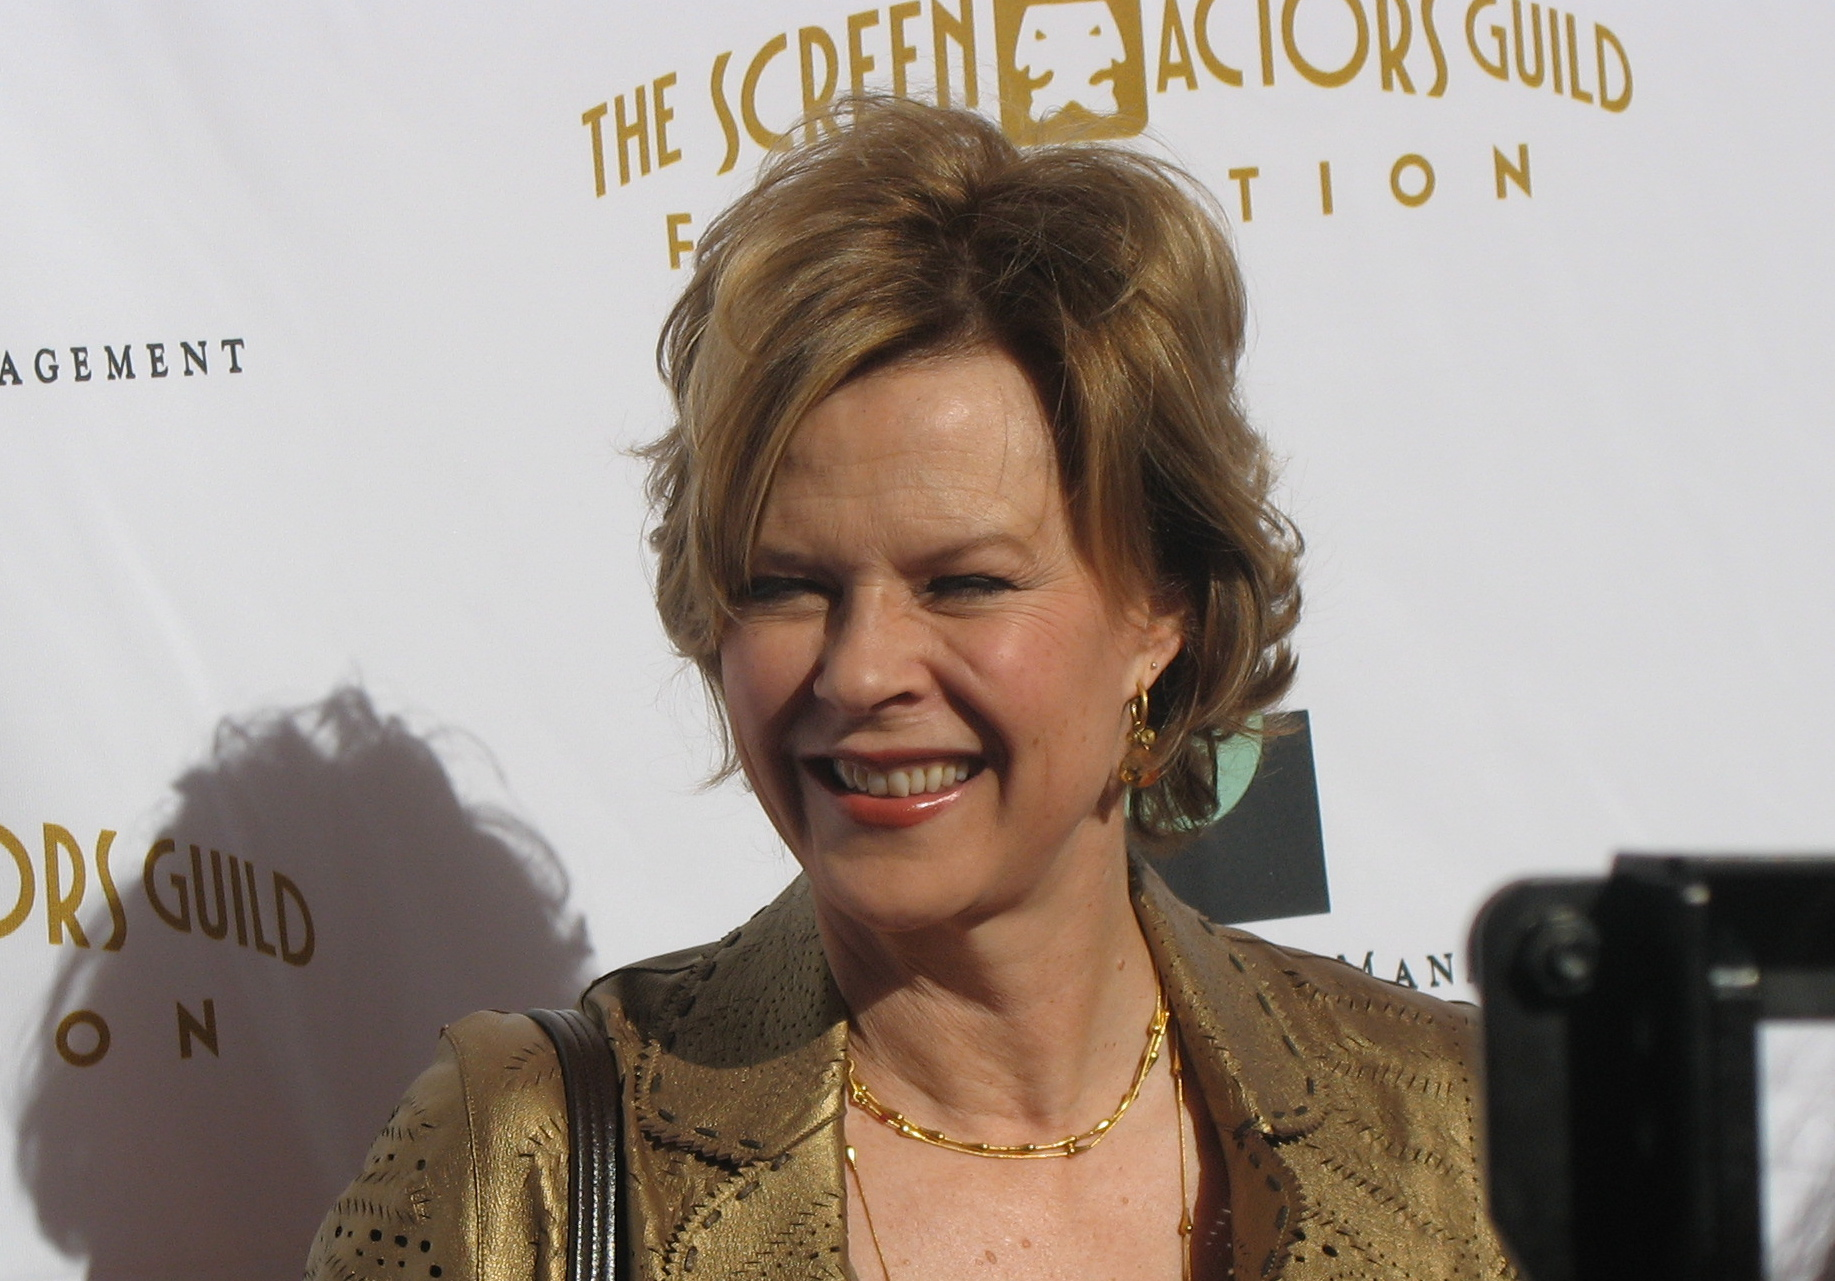 JoBeth Williams JoBeth Williams Wikipedia wolna encyklopedia